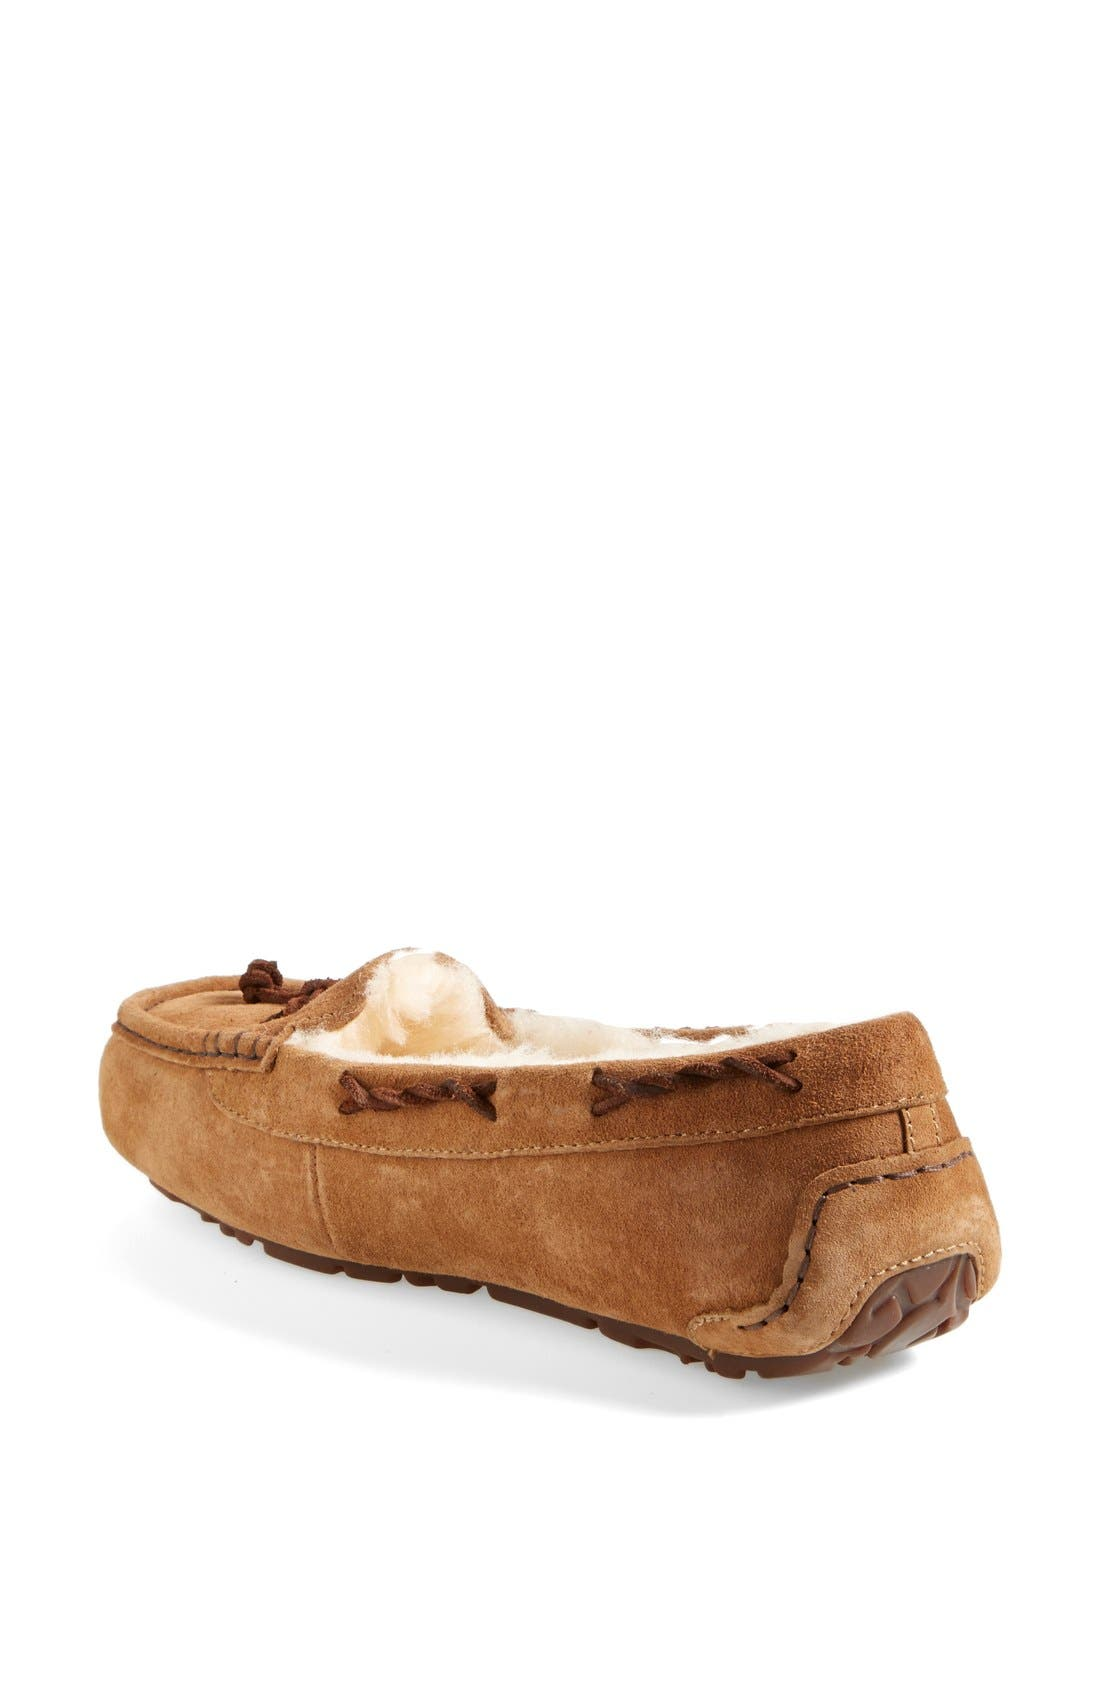 Brett Slipper,                             Alternate thumbnail 2, color,                             Chestnut/ Chocolate